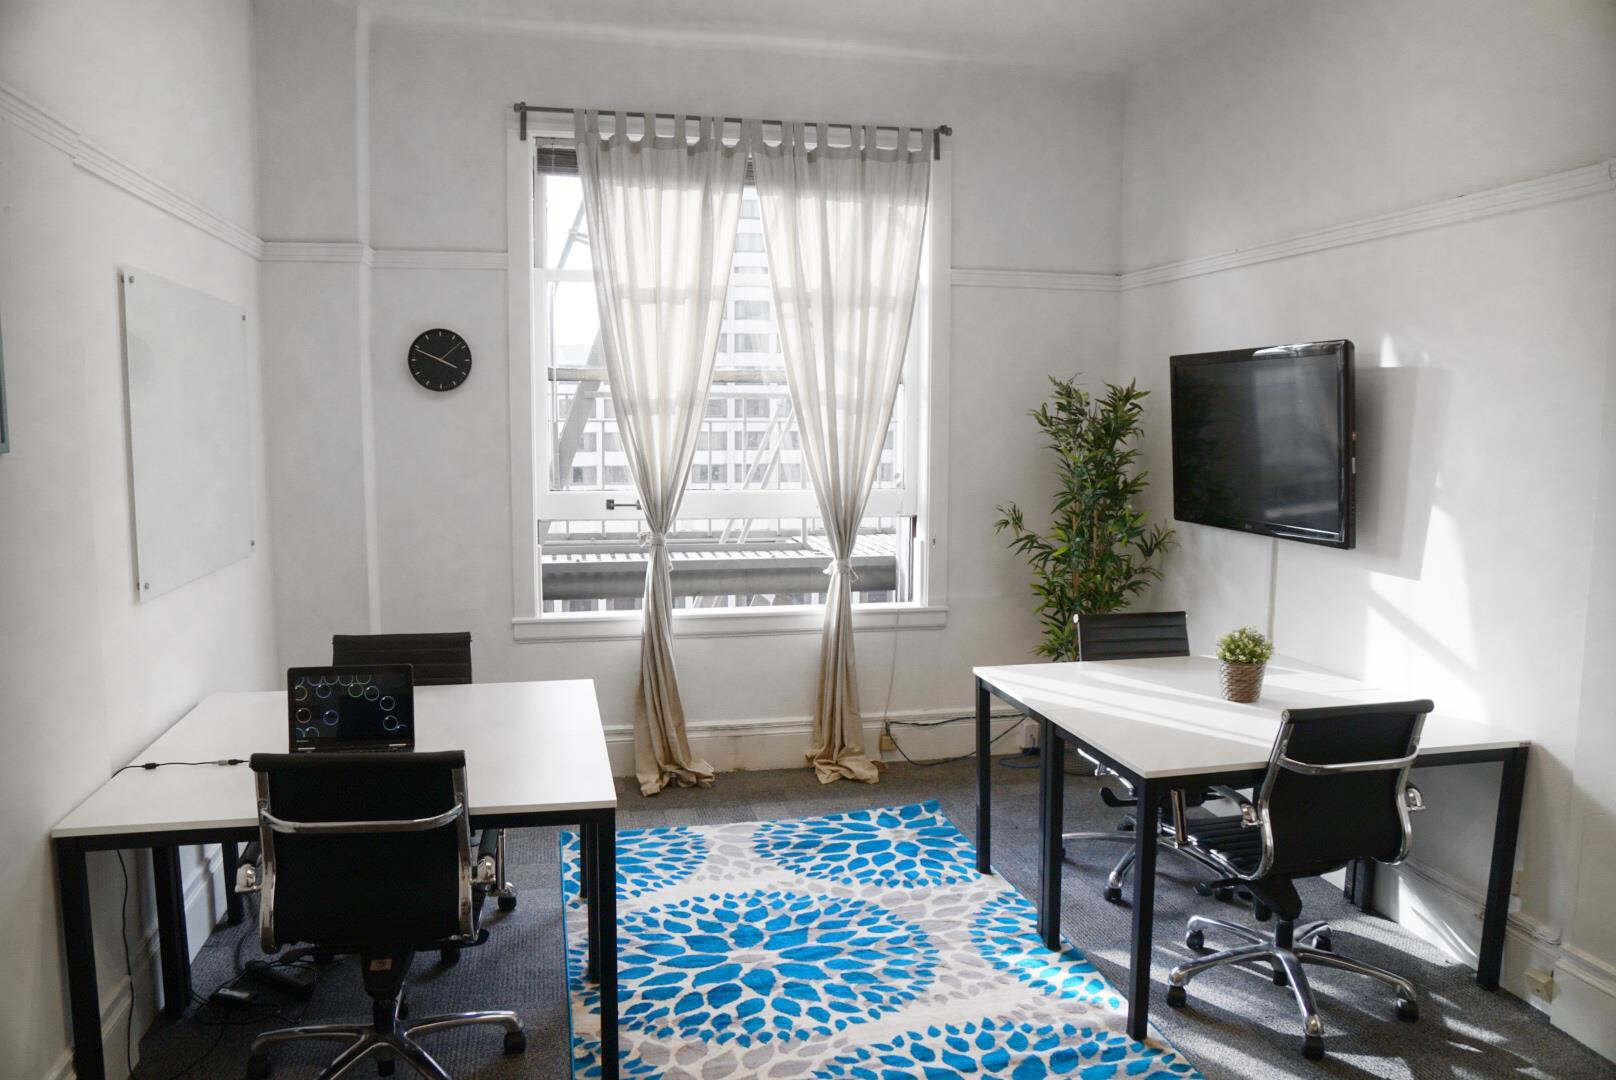 Birdnest - 870 Market - Sunny Office, Window Views, 3-5 People